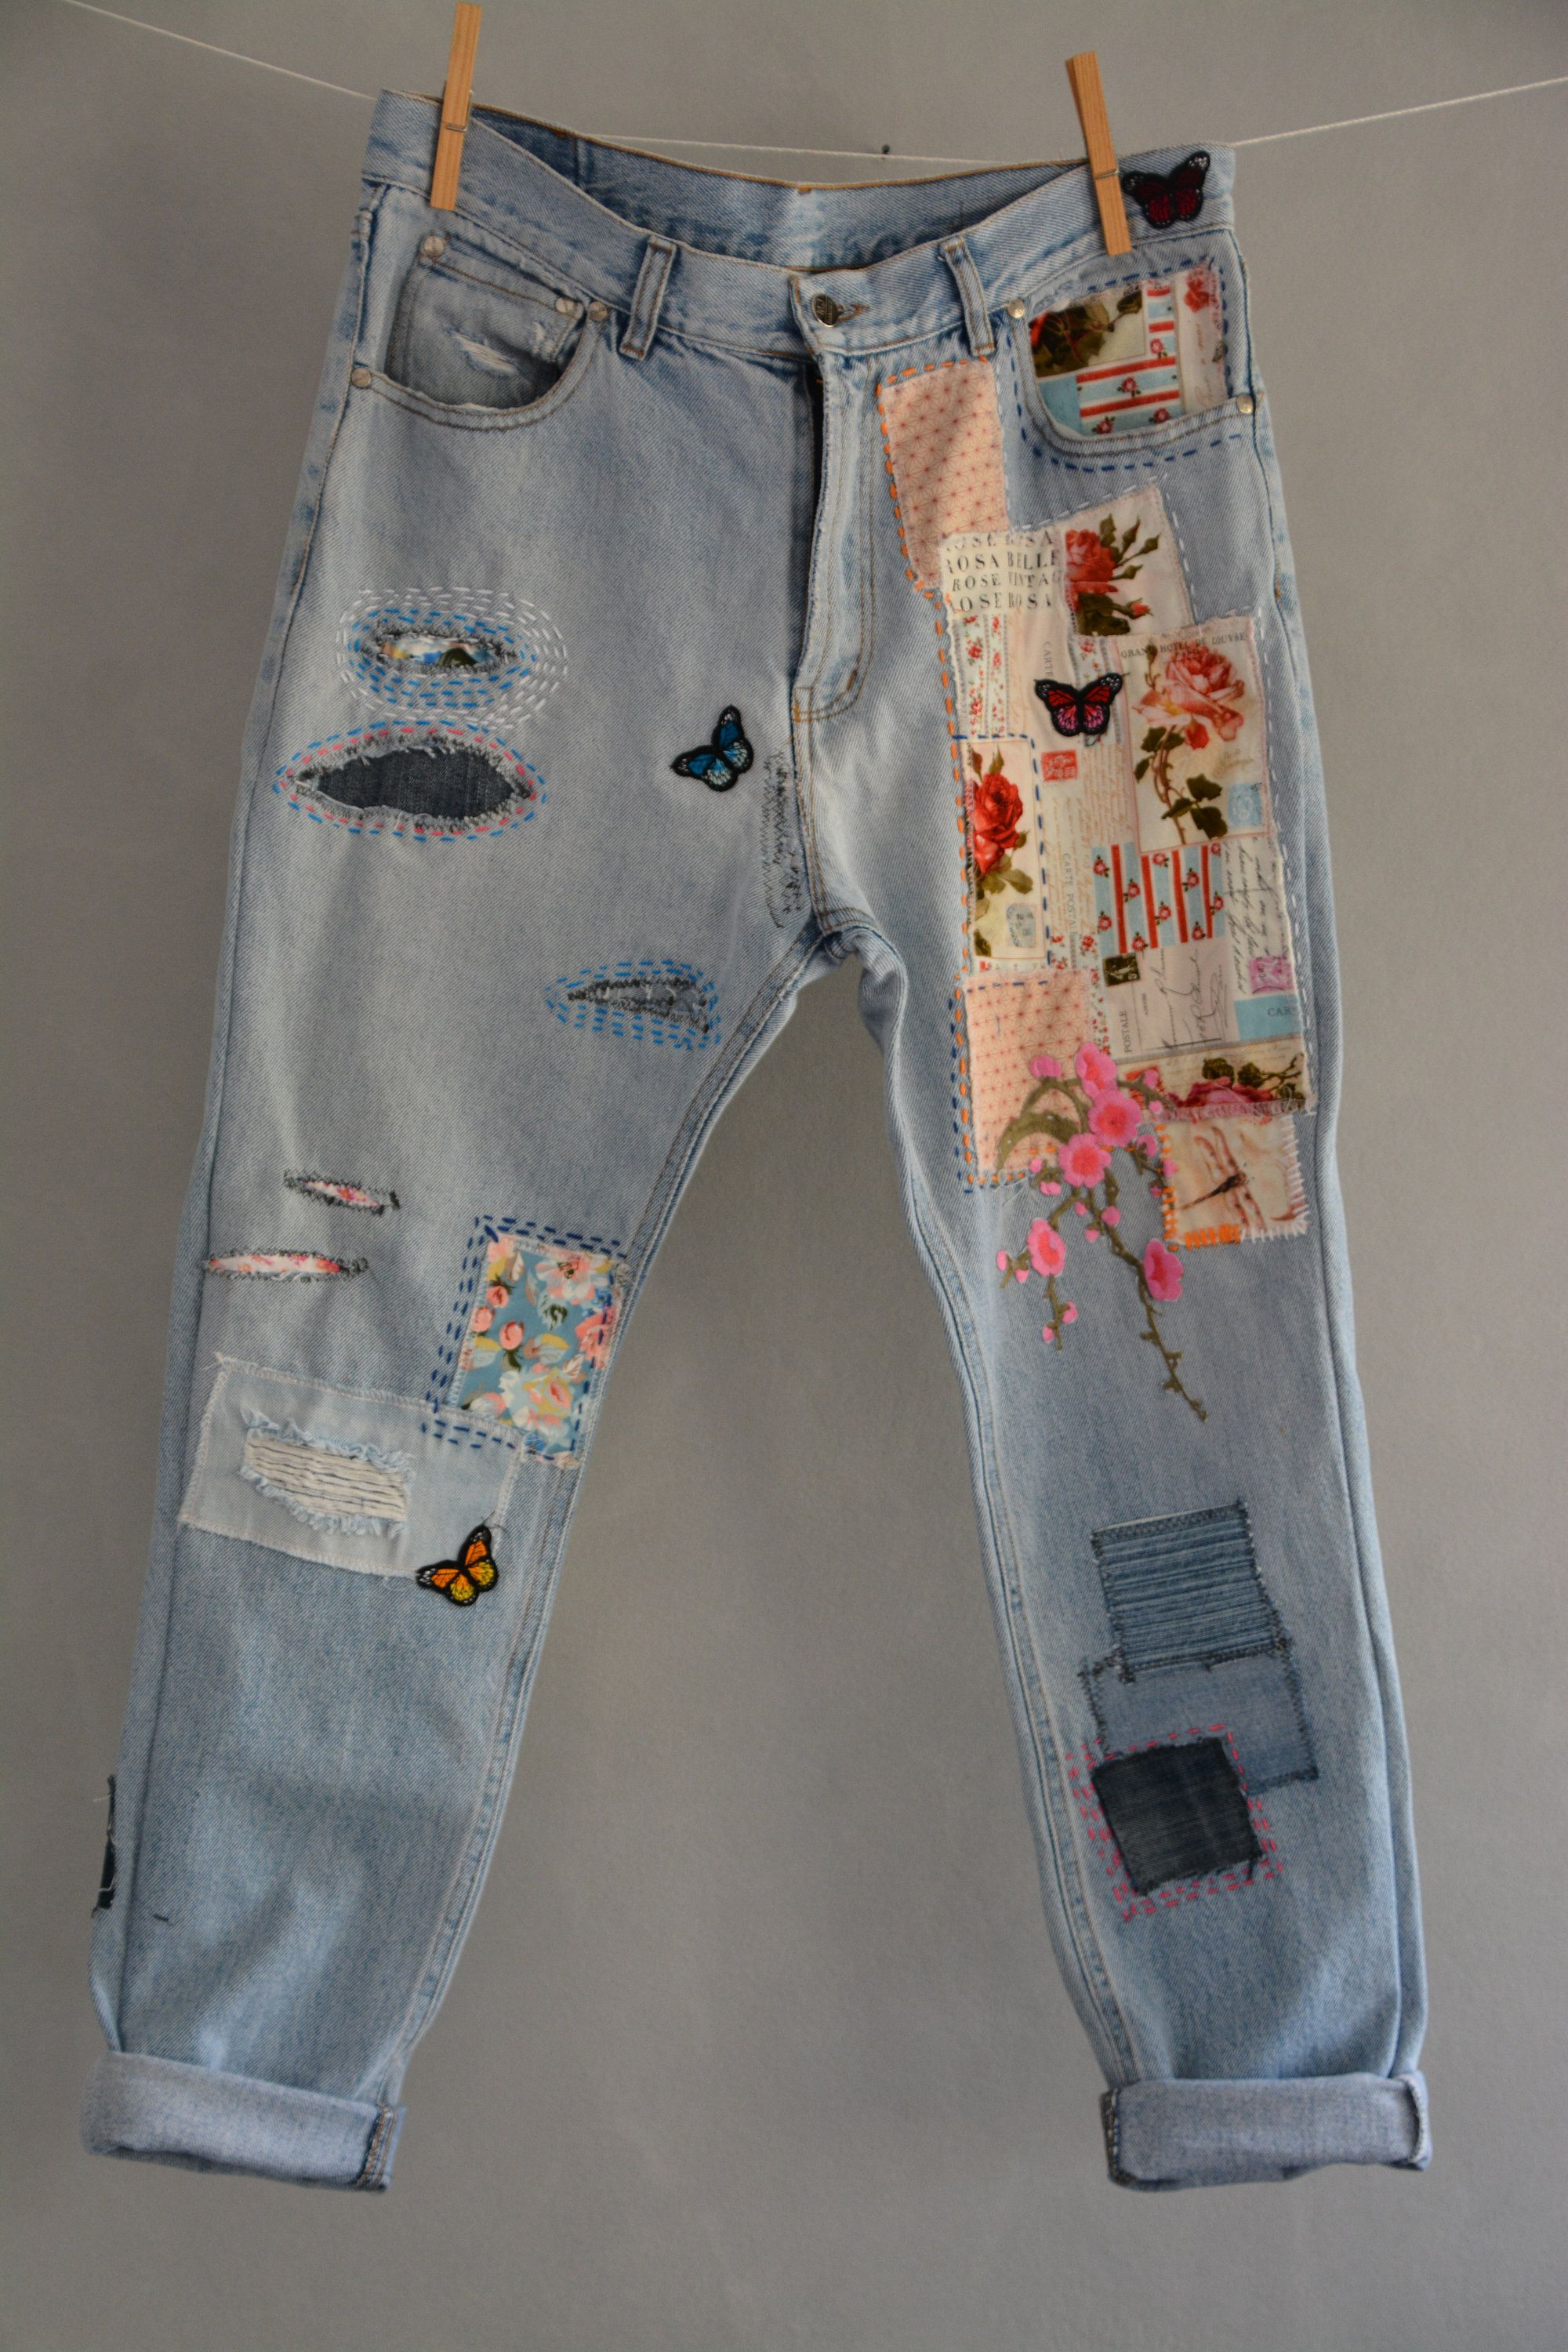 Vintage Distressed Boyfriend Jeans/Hipster Jeans/All Sizes/Grunge Jeans/boho/vintage jeans/womens jeans one of a kind jeans myqueenswish #vintage